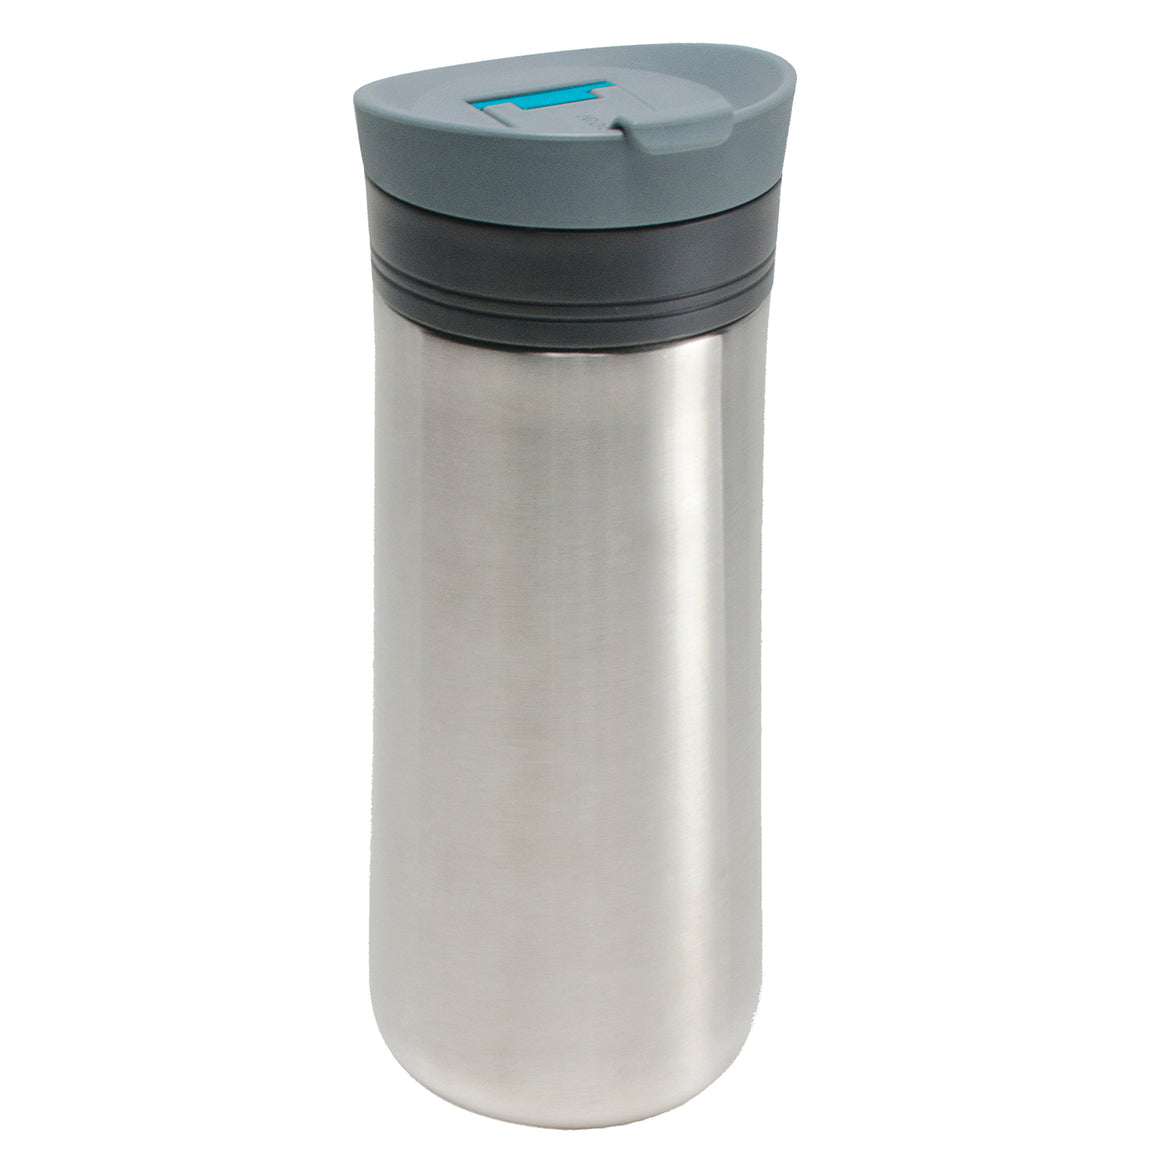 Pink Java Latch 16 Oz Travel Mug at Cool Gear Coffee Tea,Travel Mugs,Stainless Steel